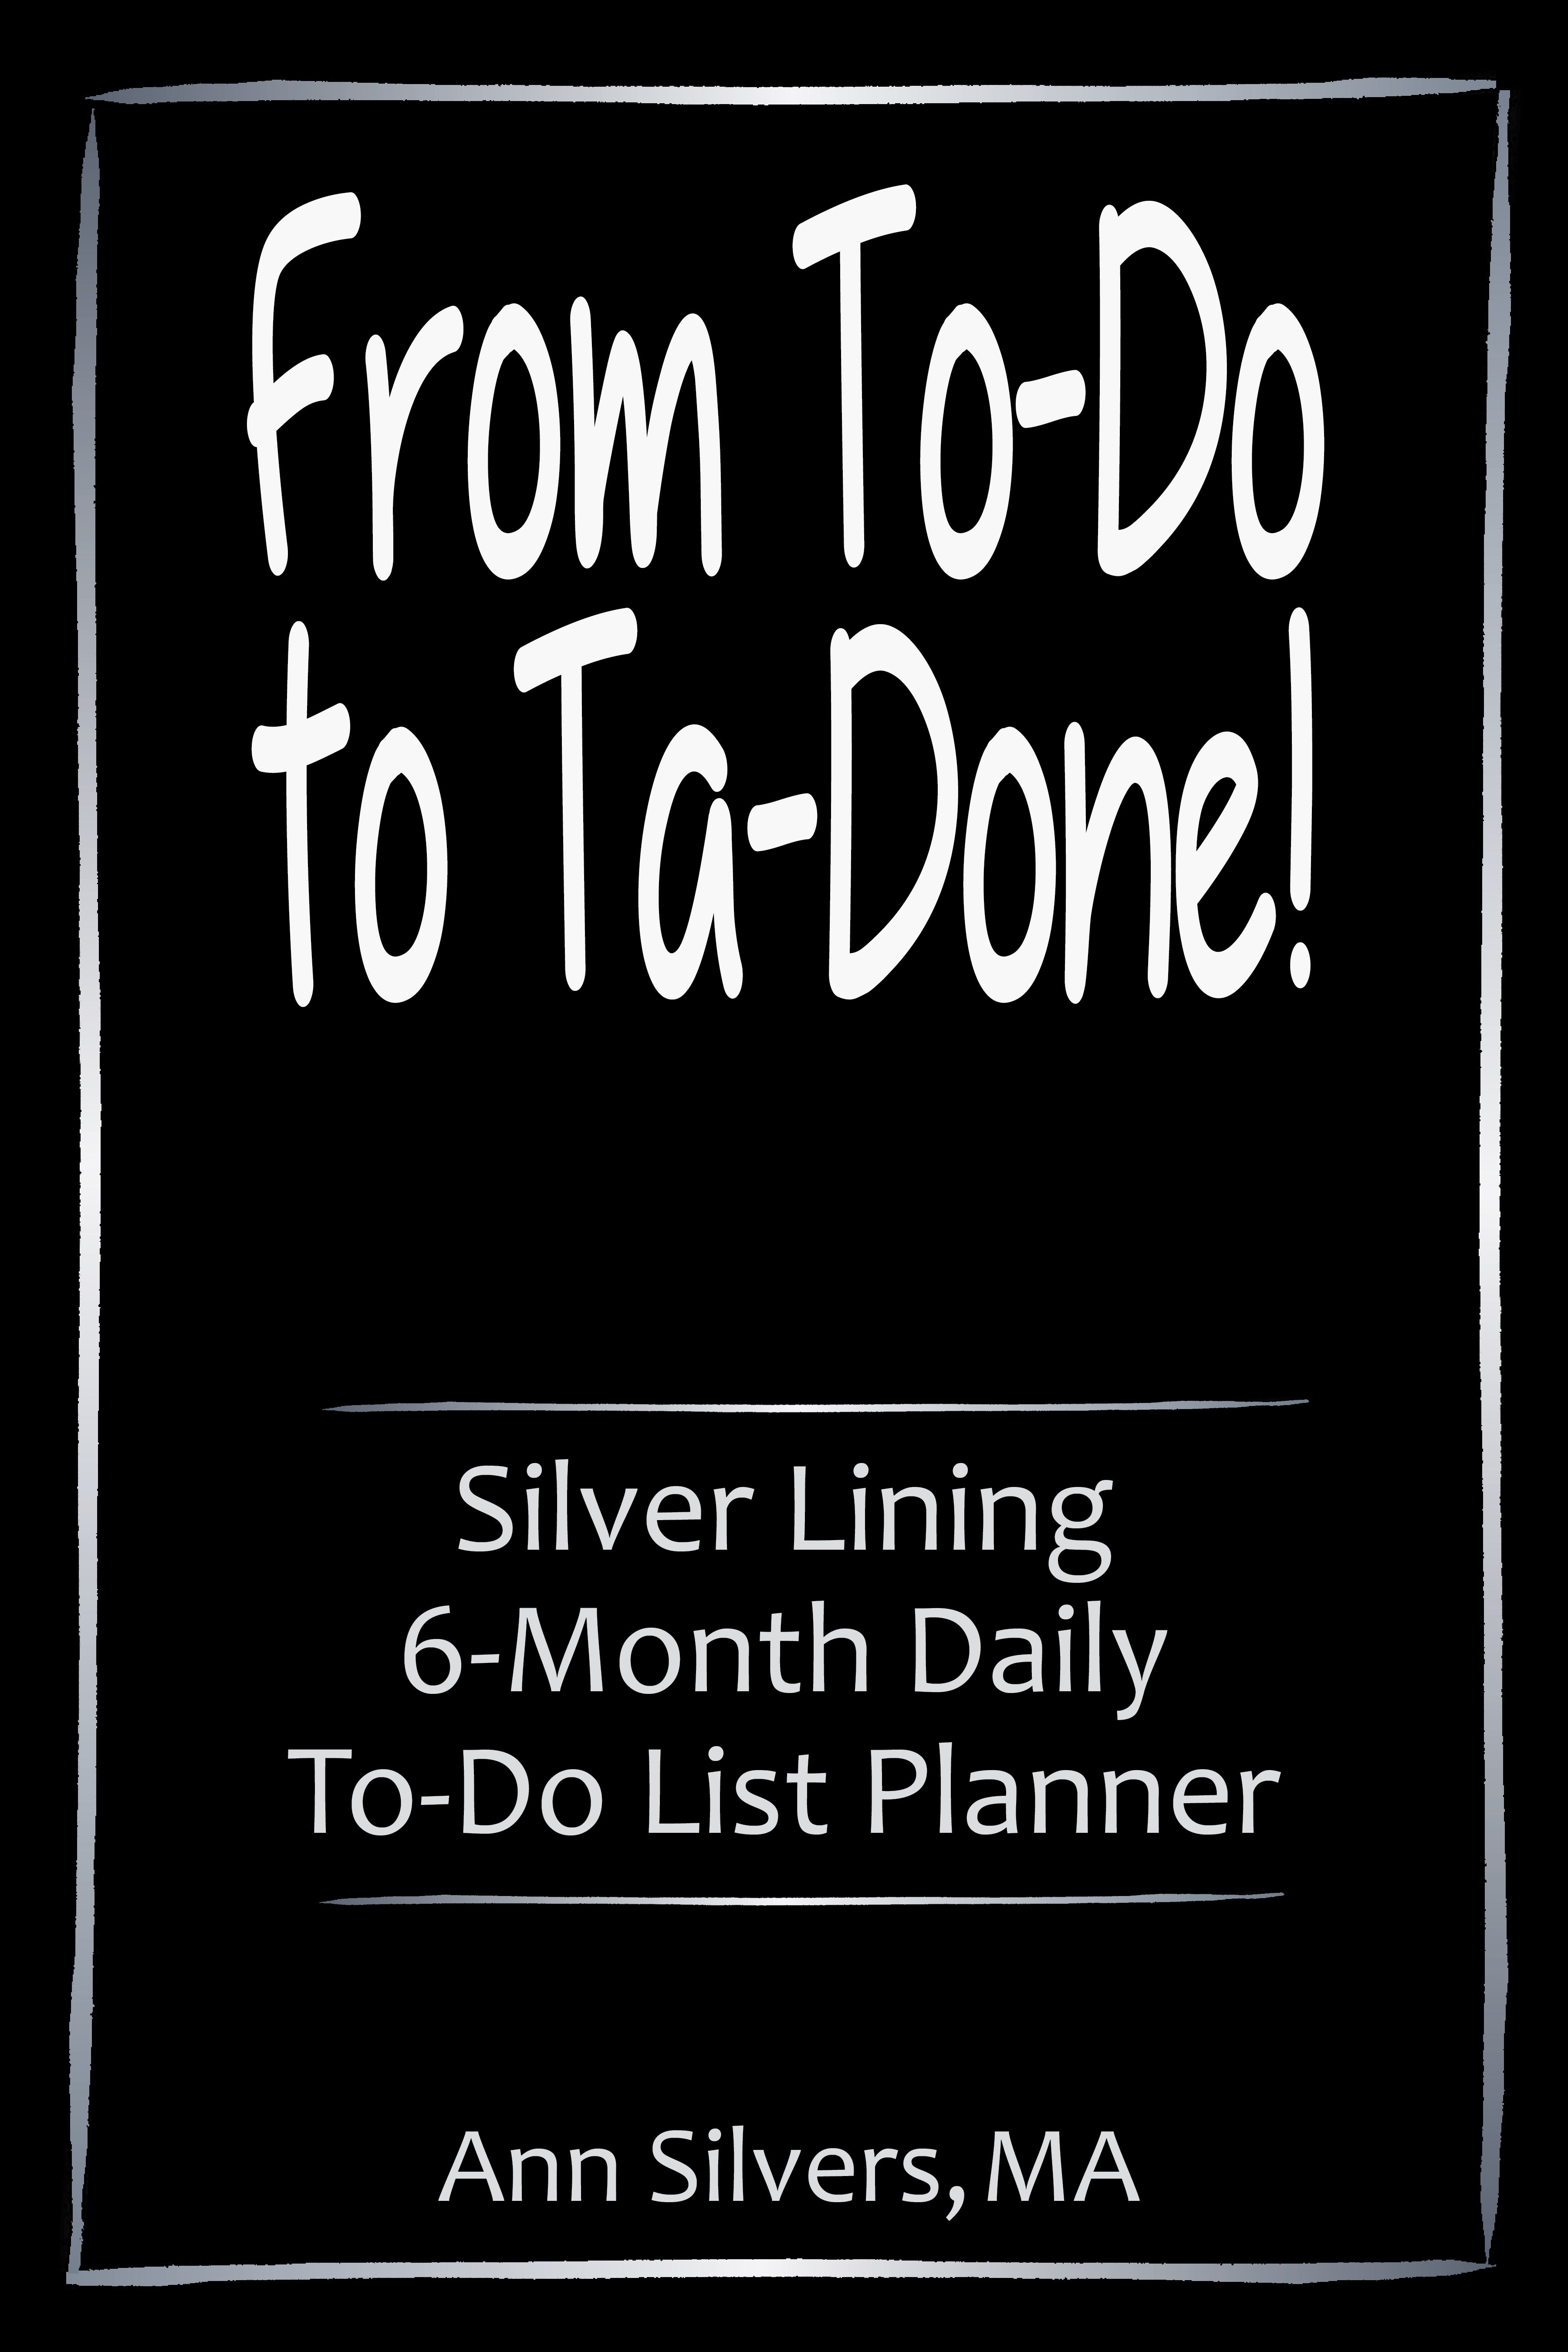 From To-Do to Ta-Done! Silver Lining 6-Month Daily To-Do List Planner